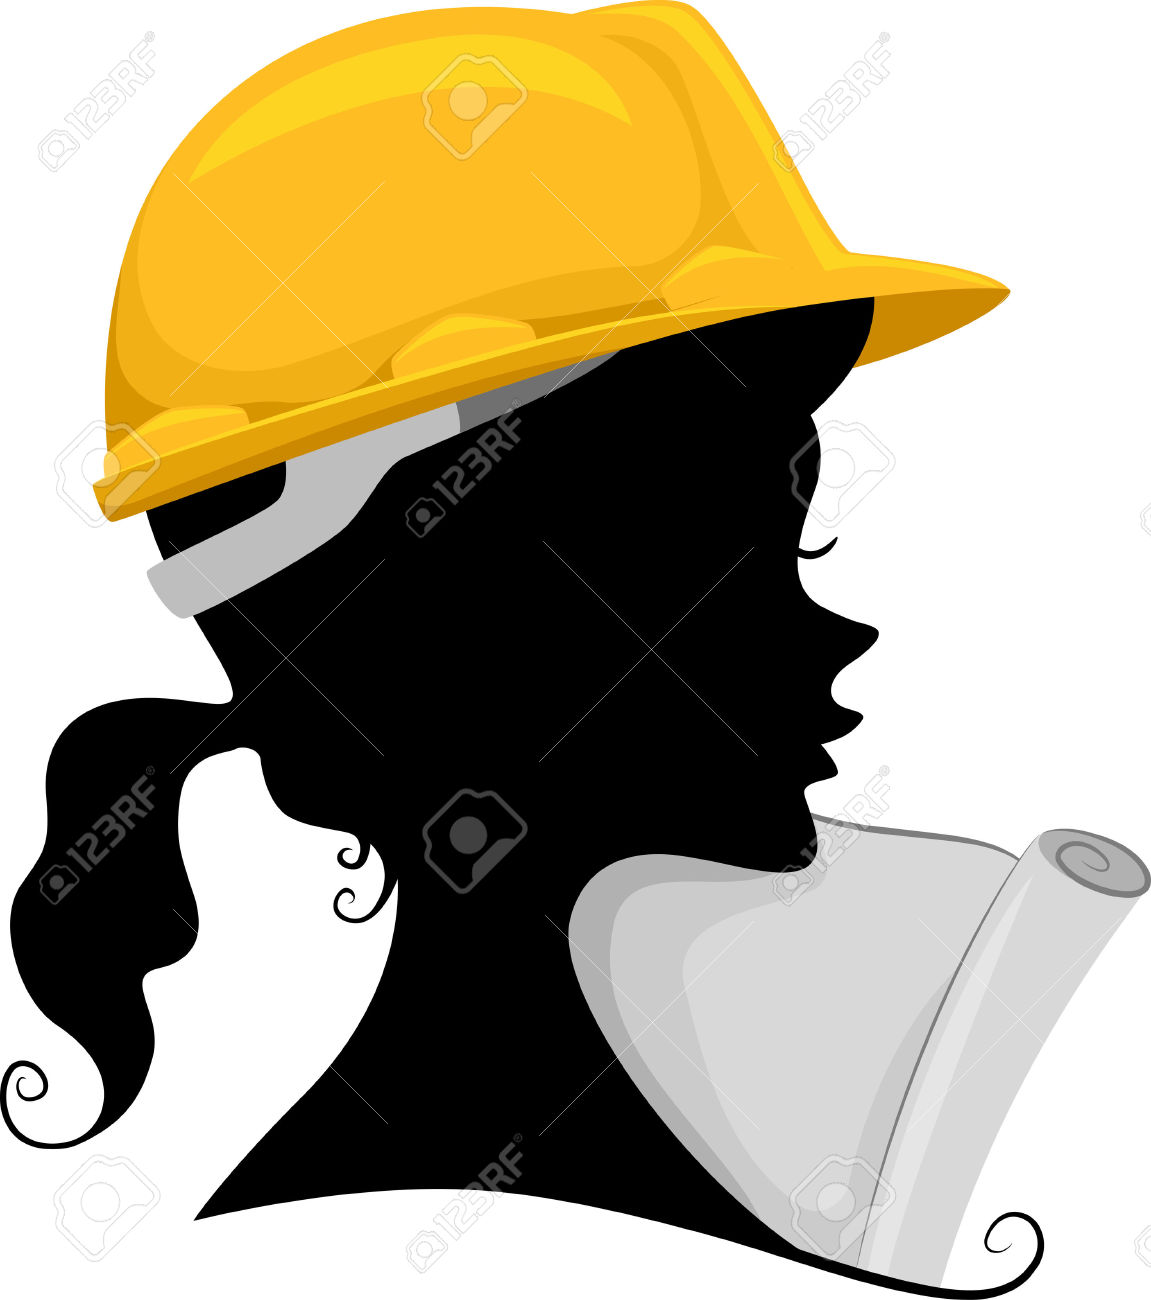 Woman in helmet clipart royalty free stock Female Engineer Clipart   Free download best Female Engineer ... royalty free stock